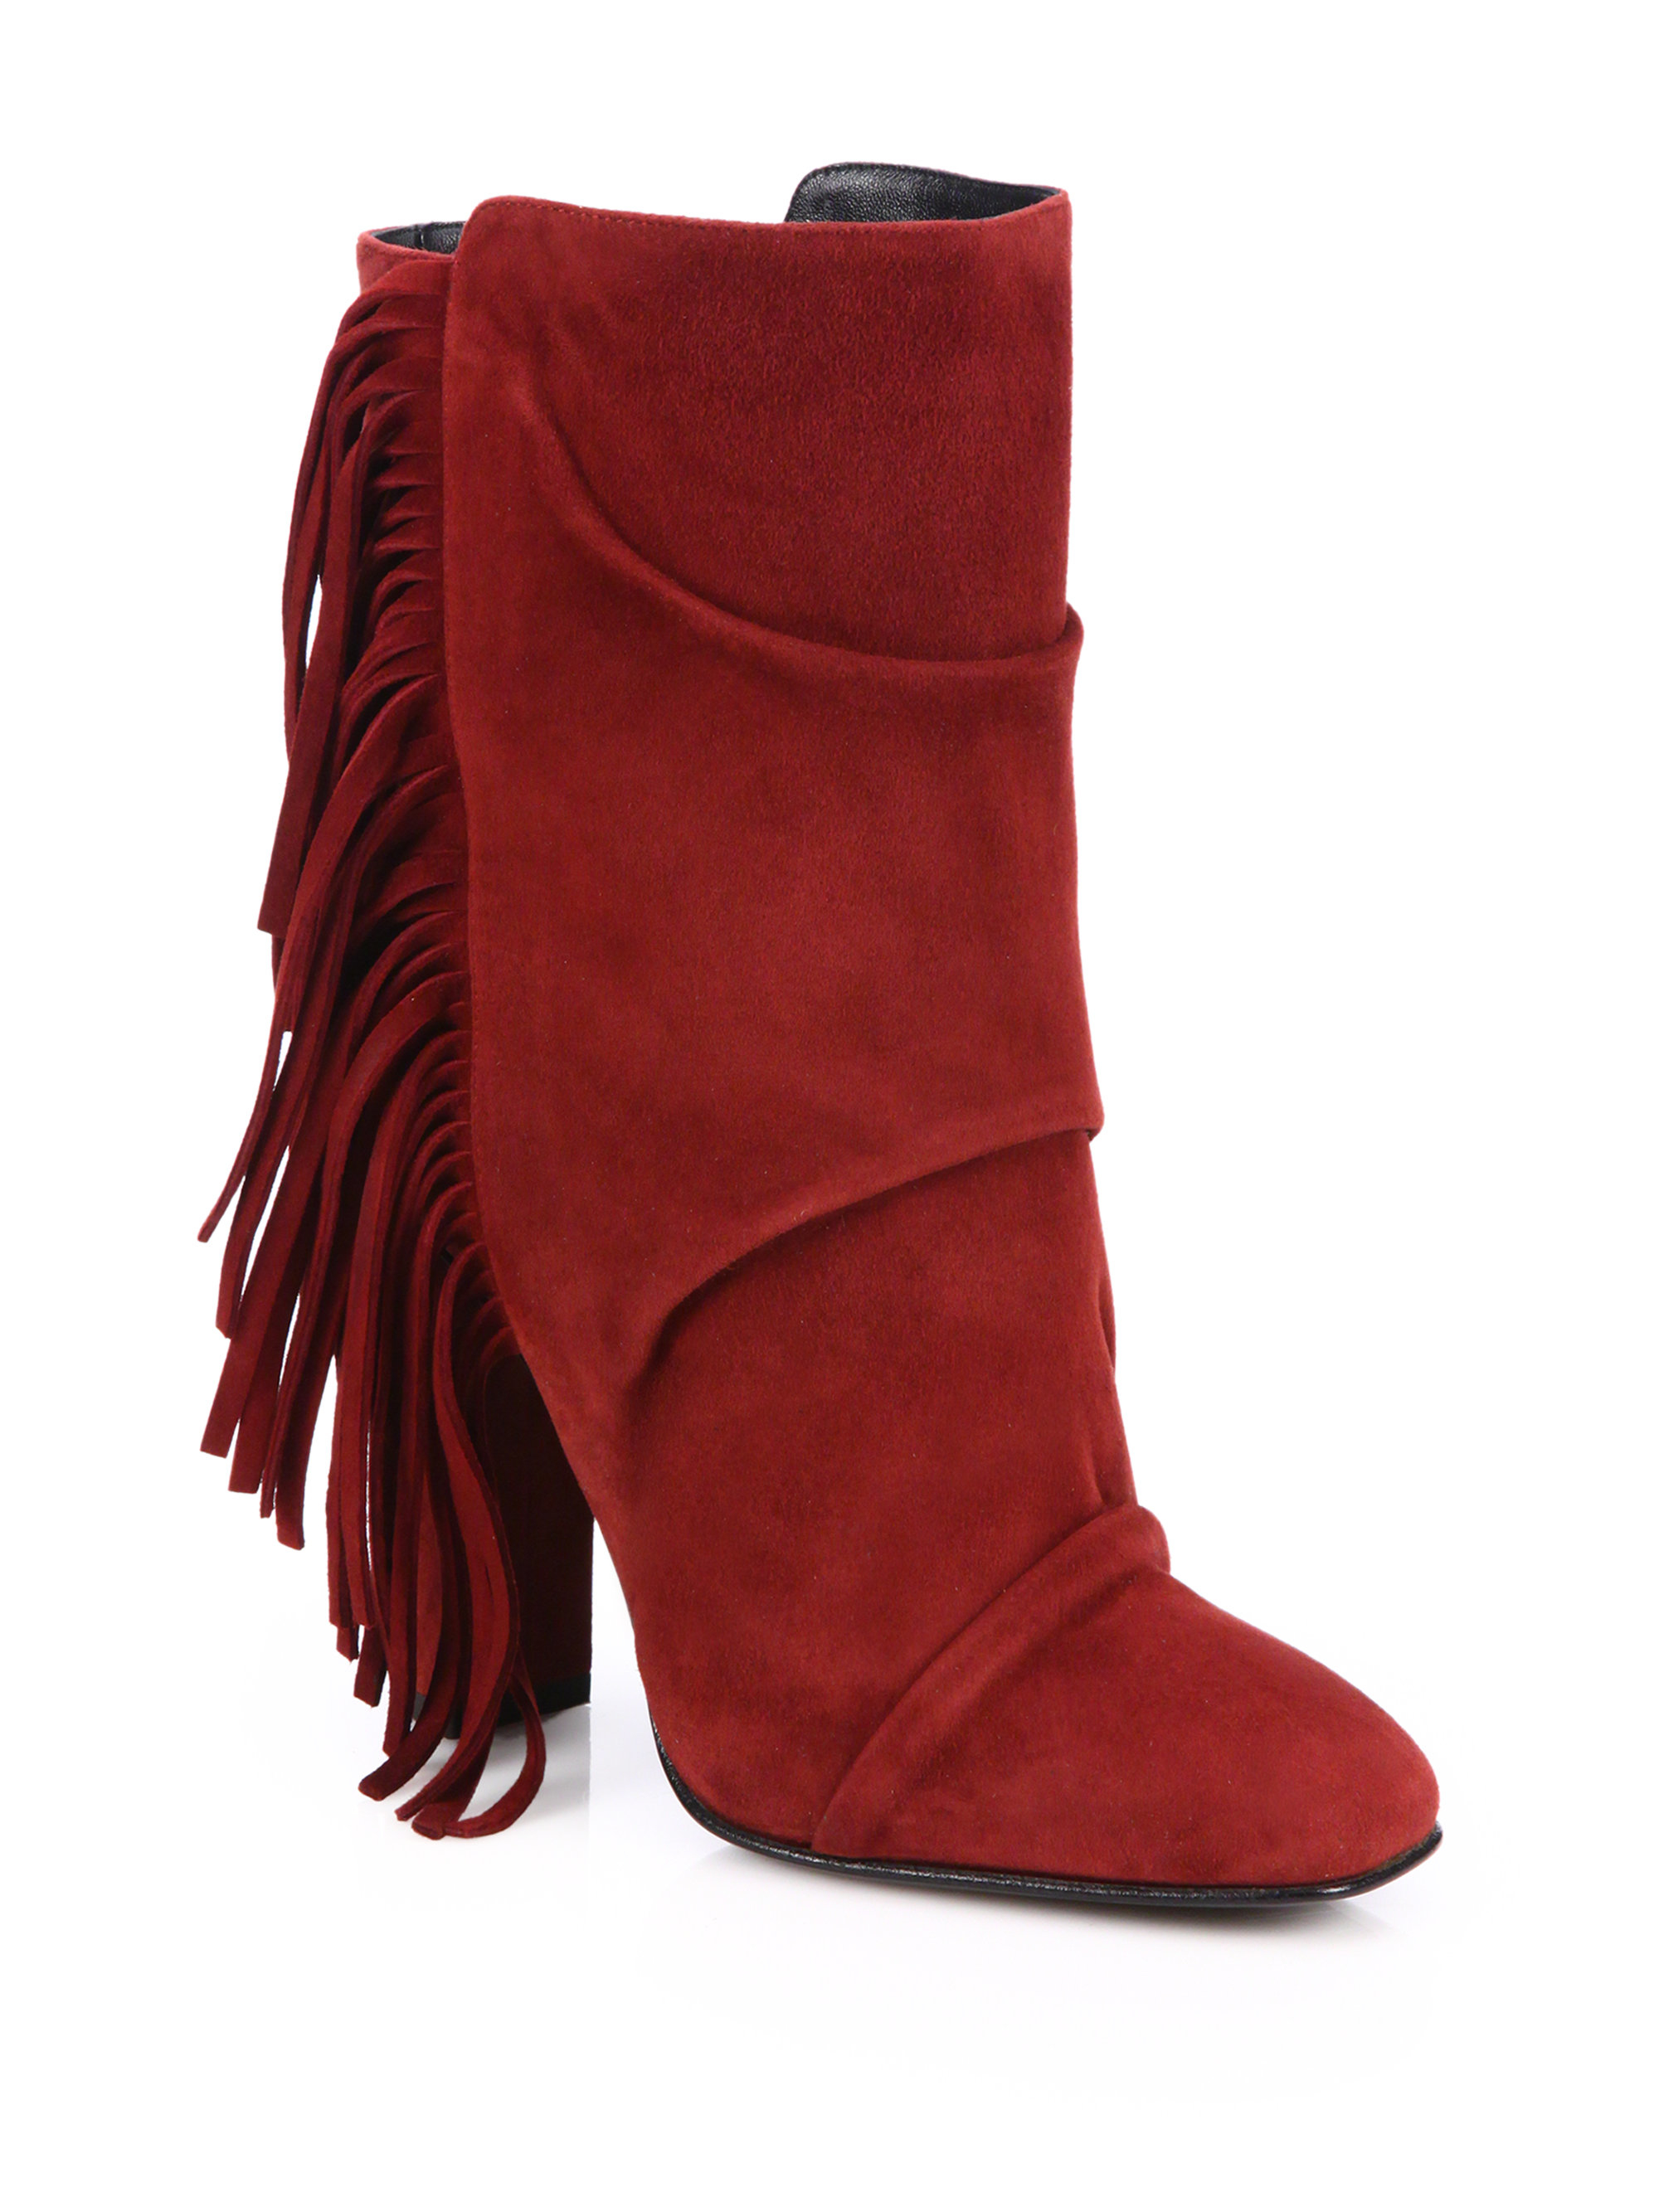 giuseppe zanotti fringed suede mid calf boots in lyst